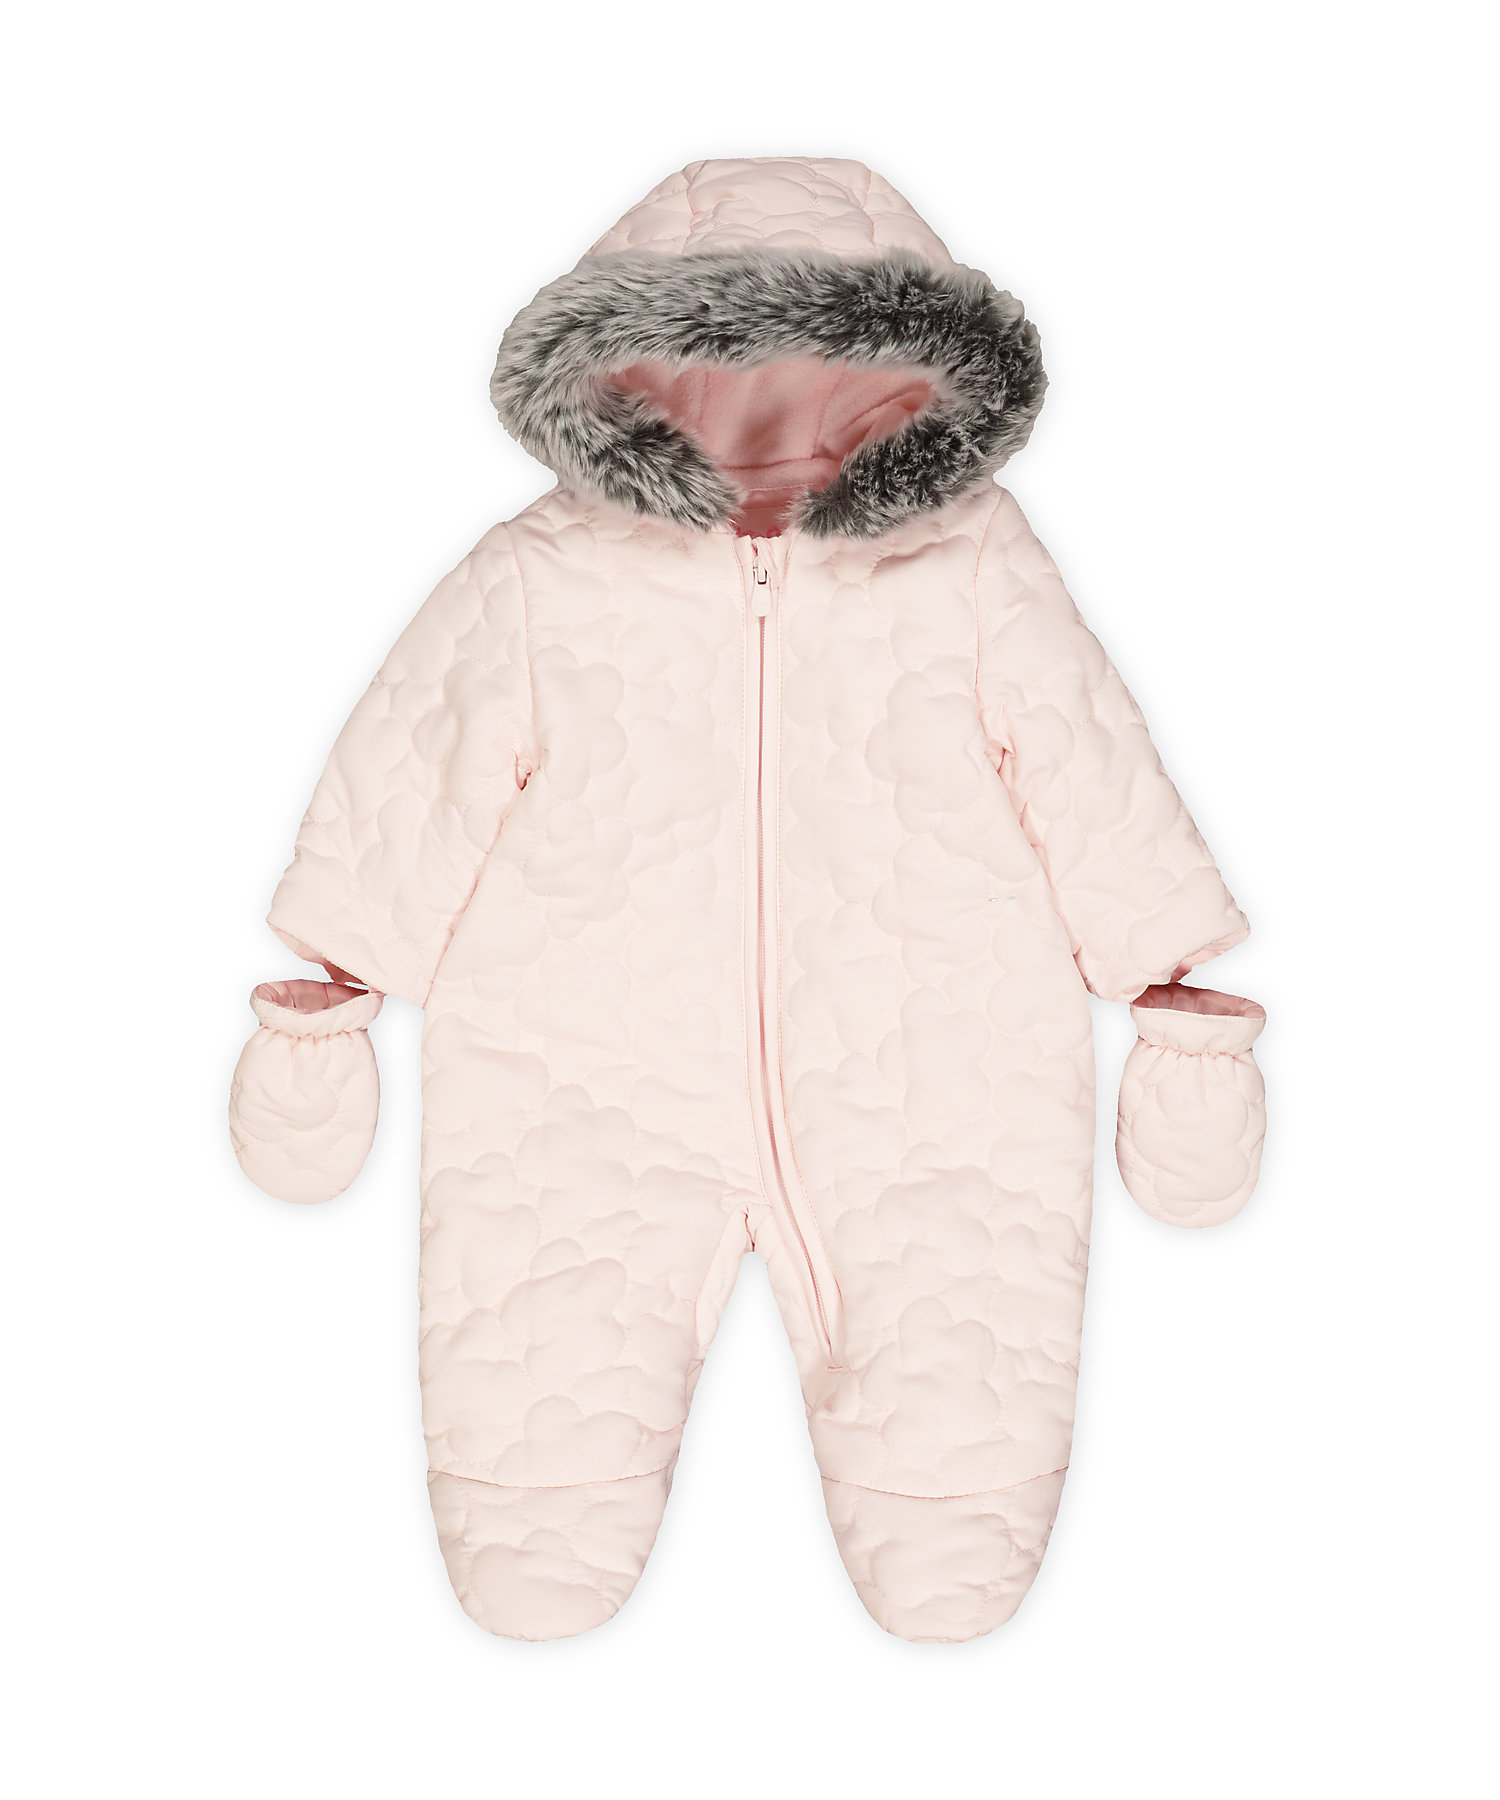 Mothercare   Girls Full Sleeves Quilted Snowsuit Hooded - Pink